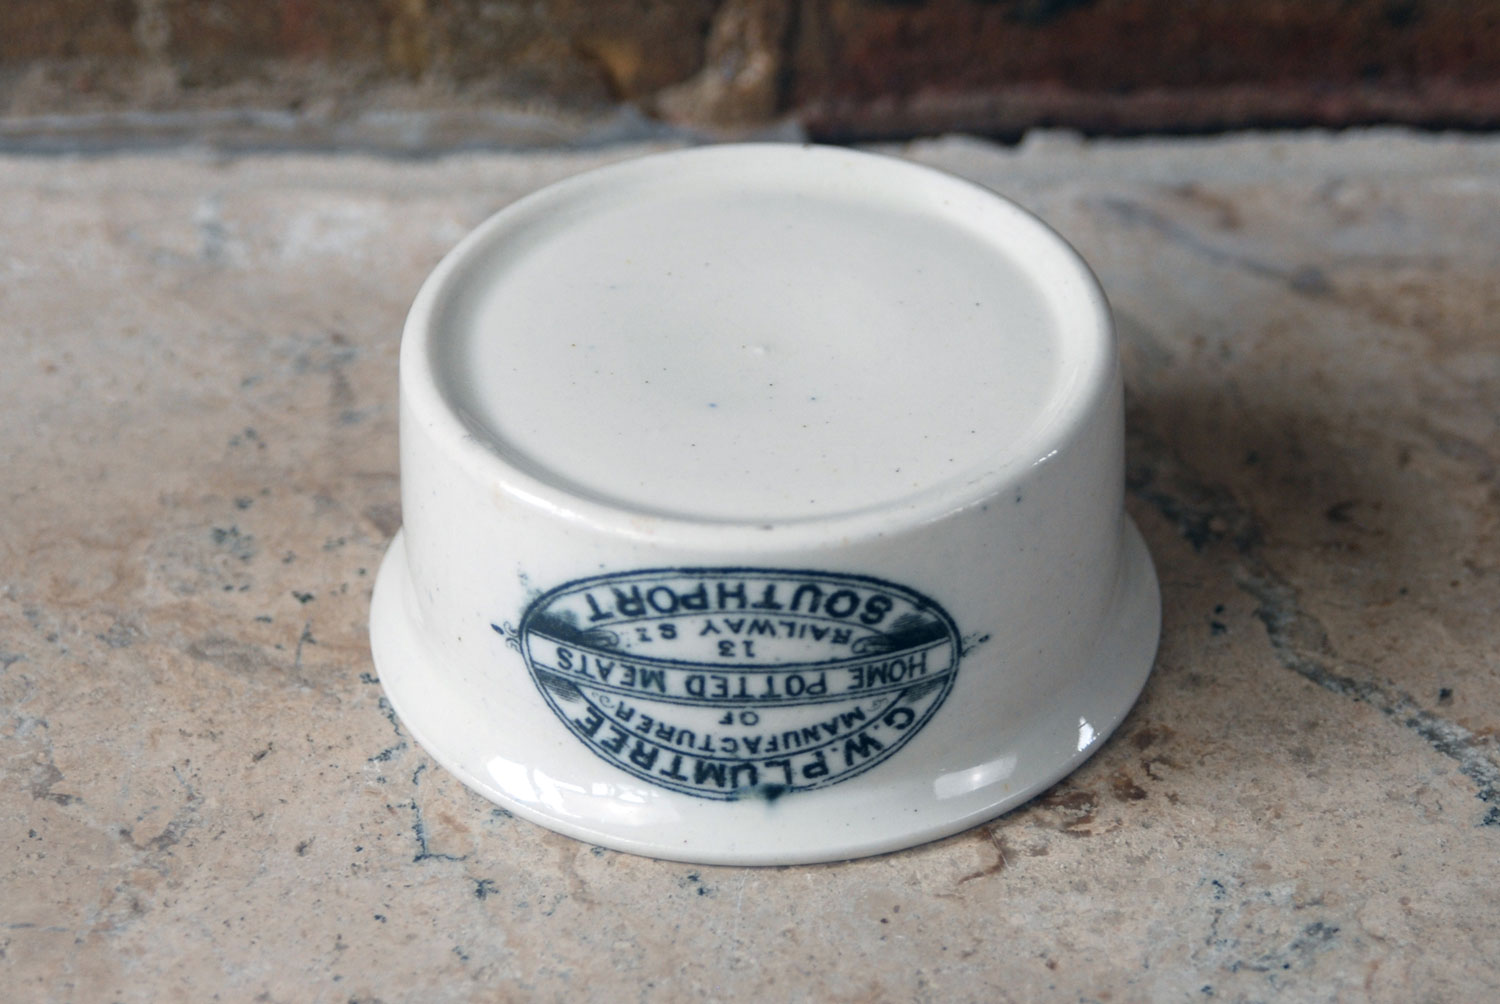 white ironstone packaging gw plumtree antique potted meat jar